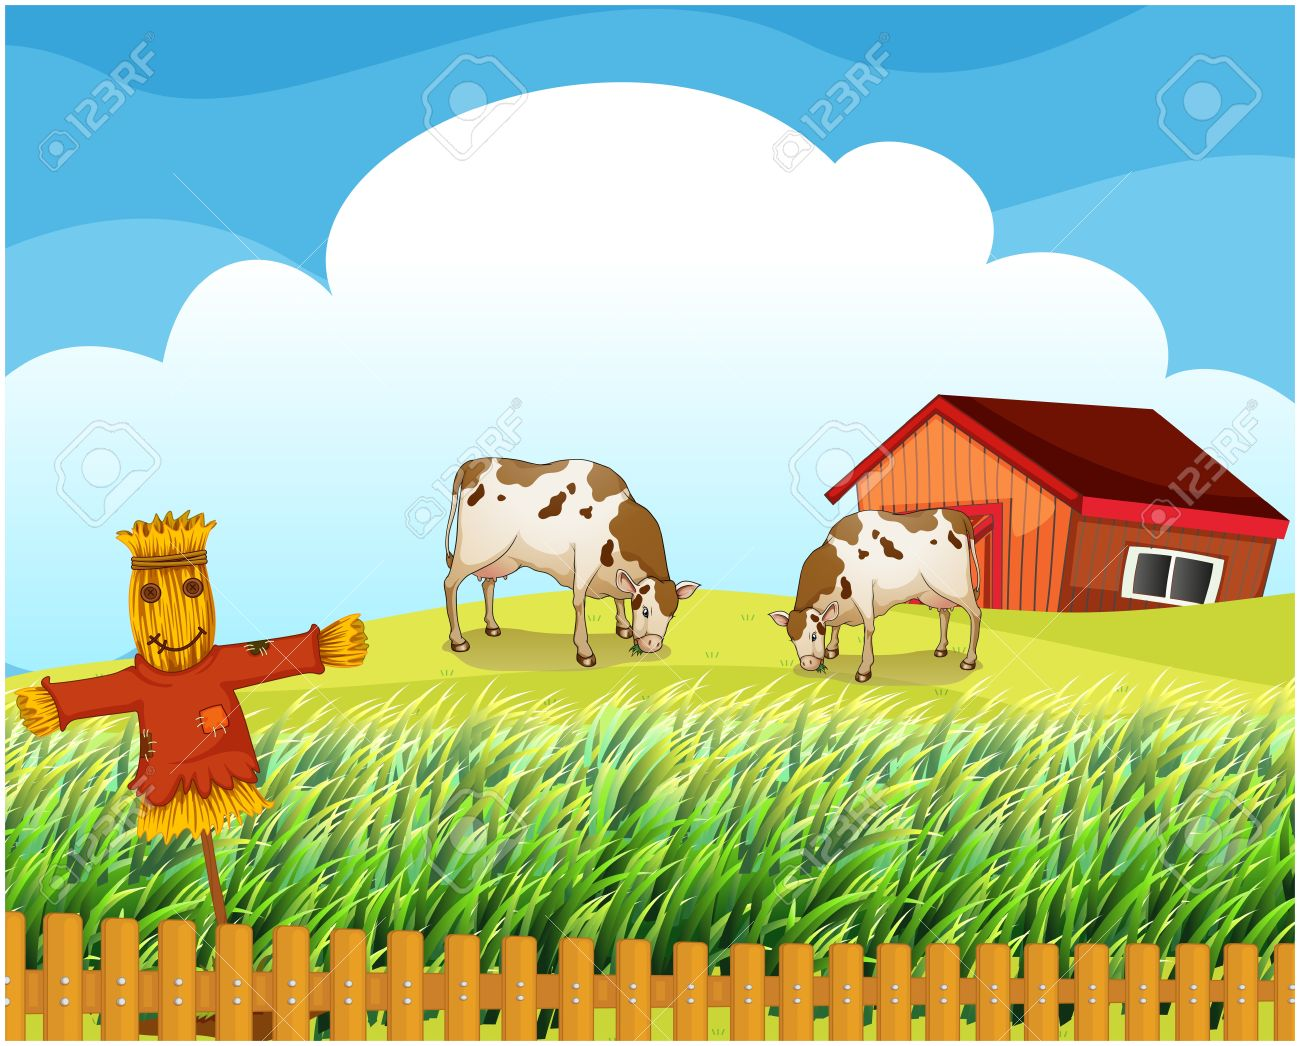 Rice field clipart.